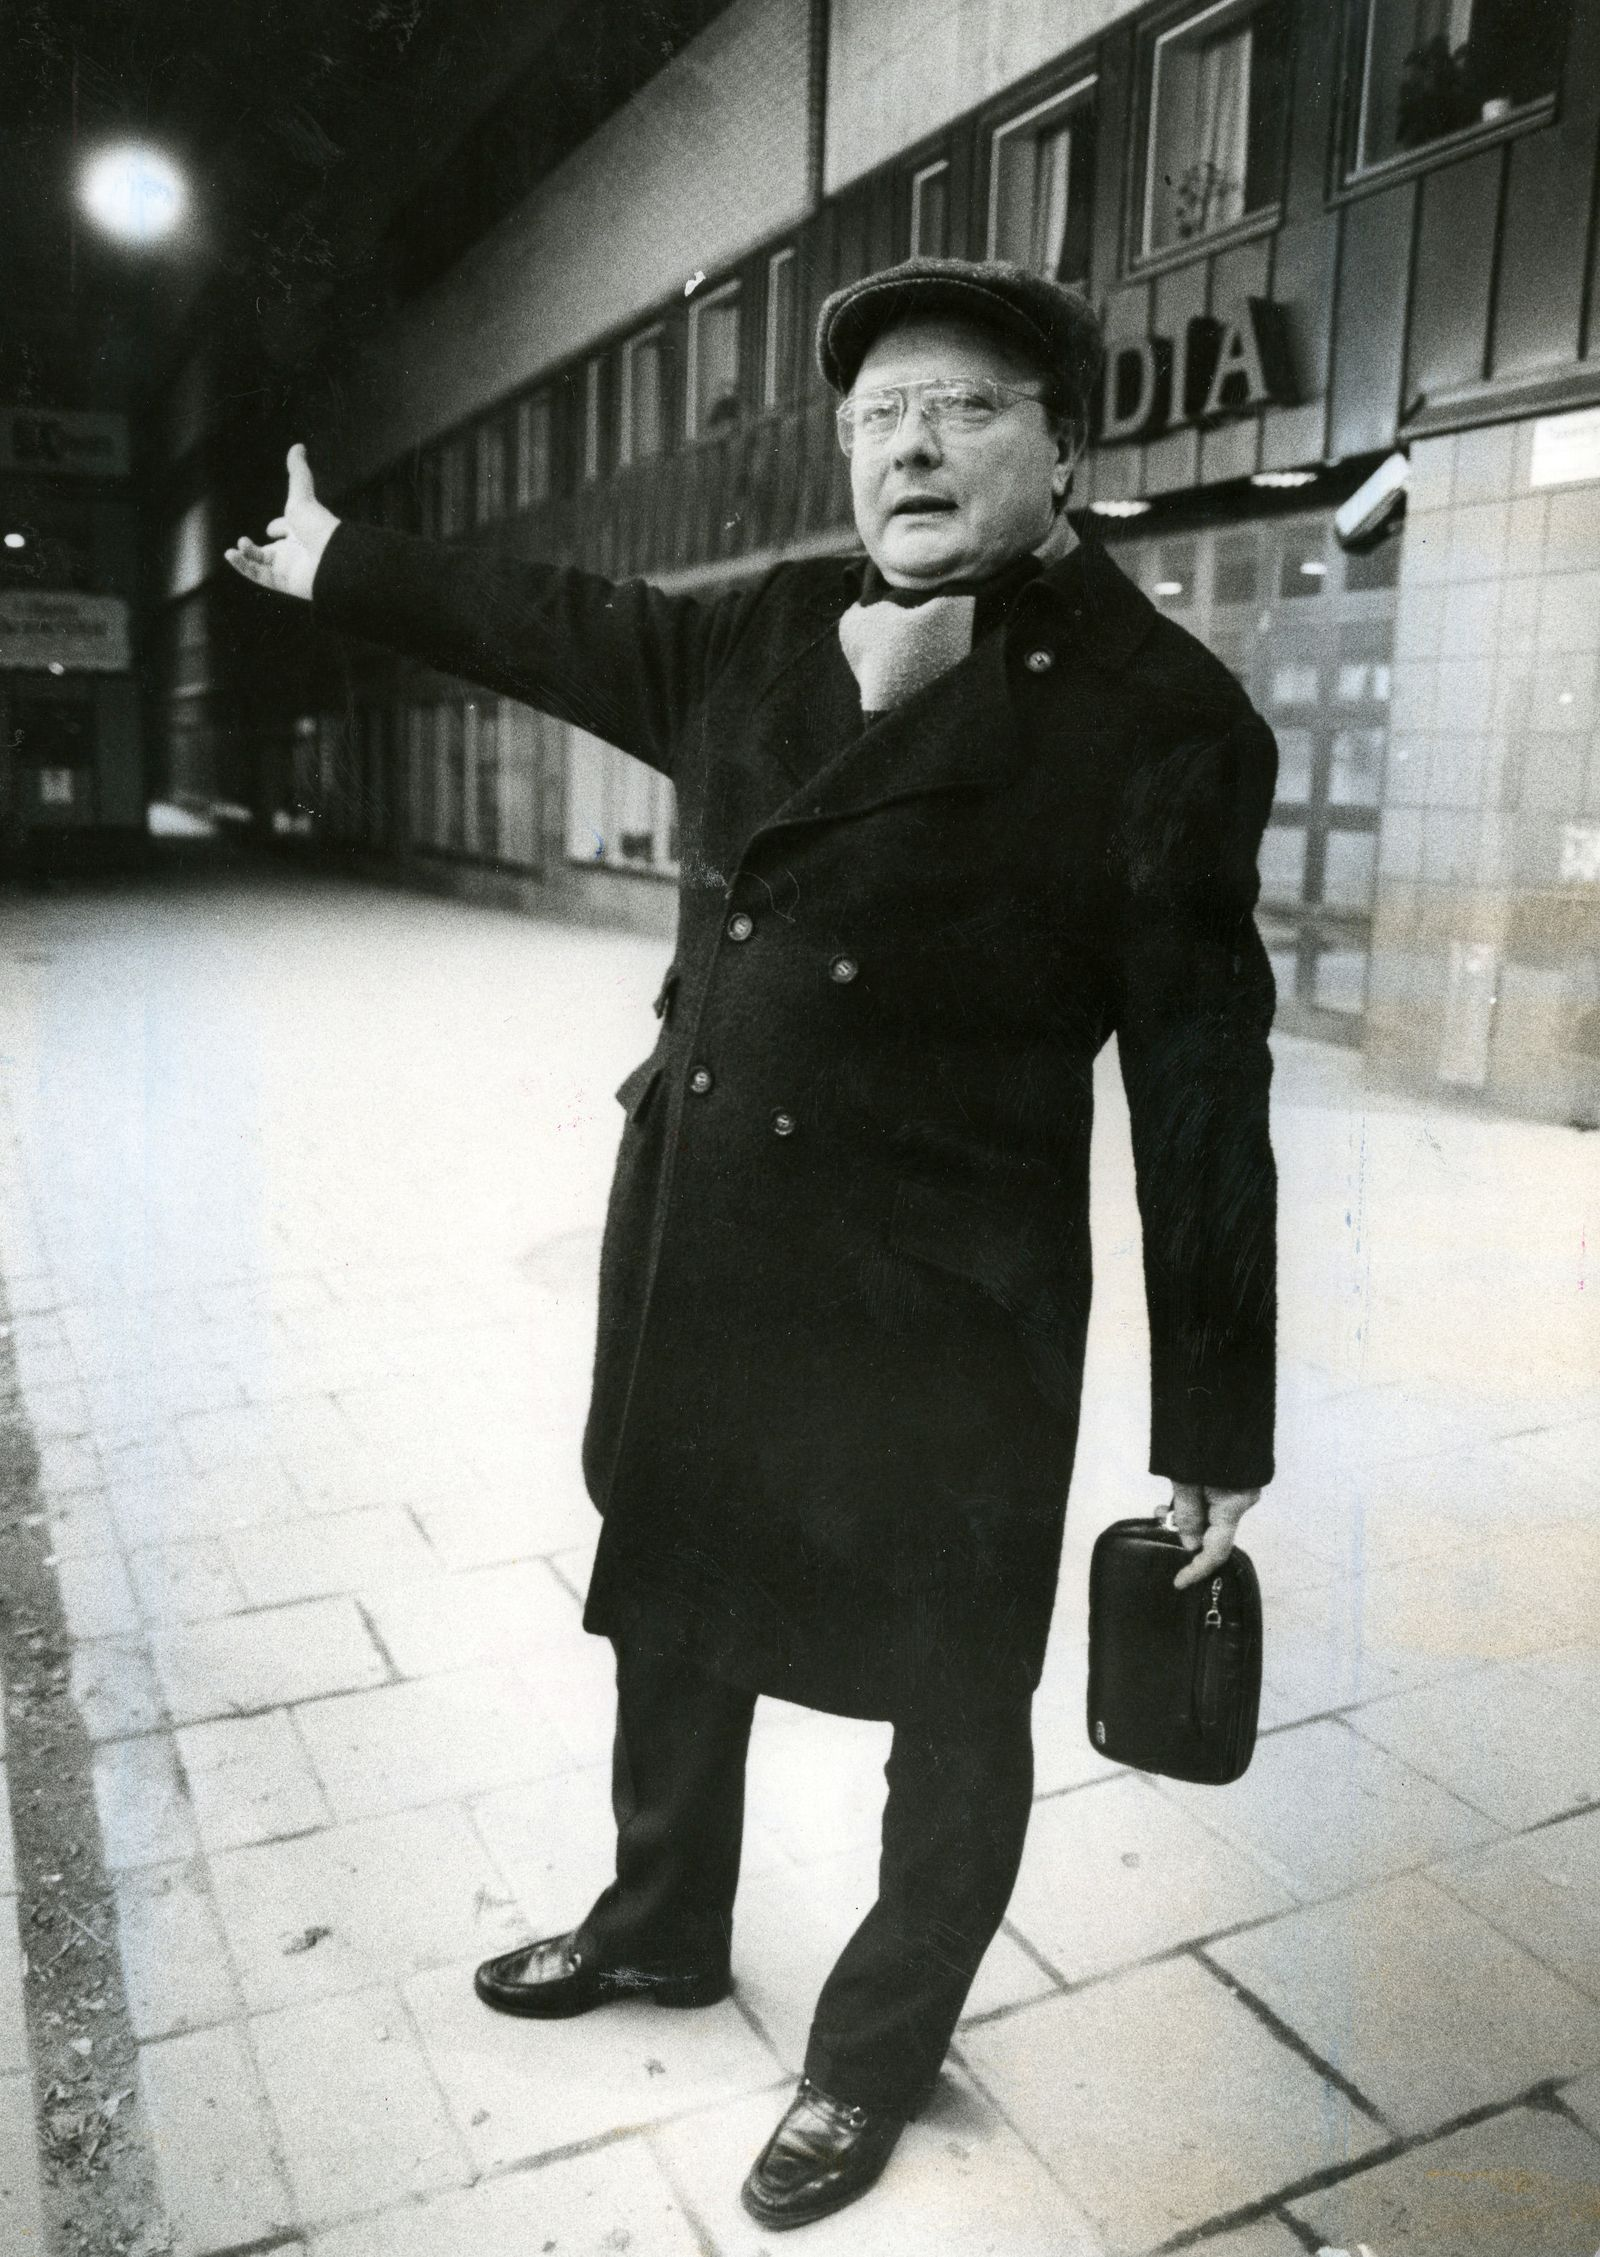 Stig Engstrom gestures outside Skandias office in Stockholm